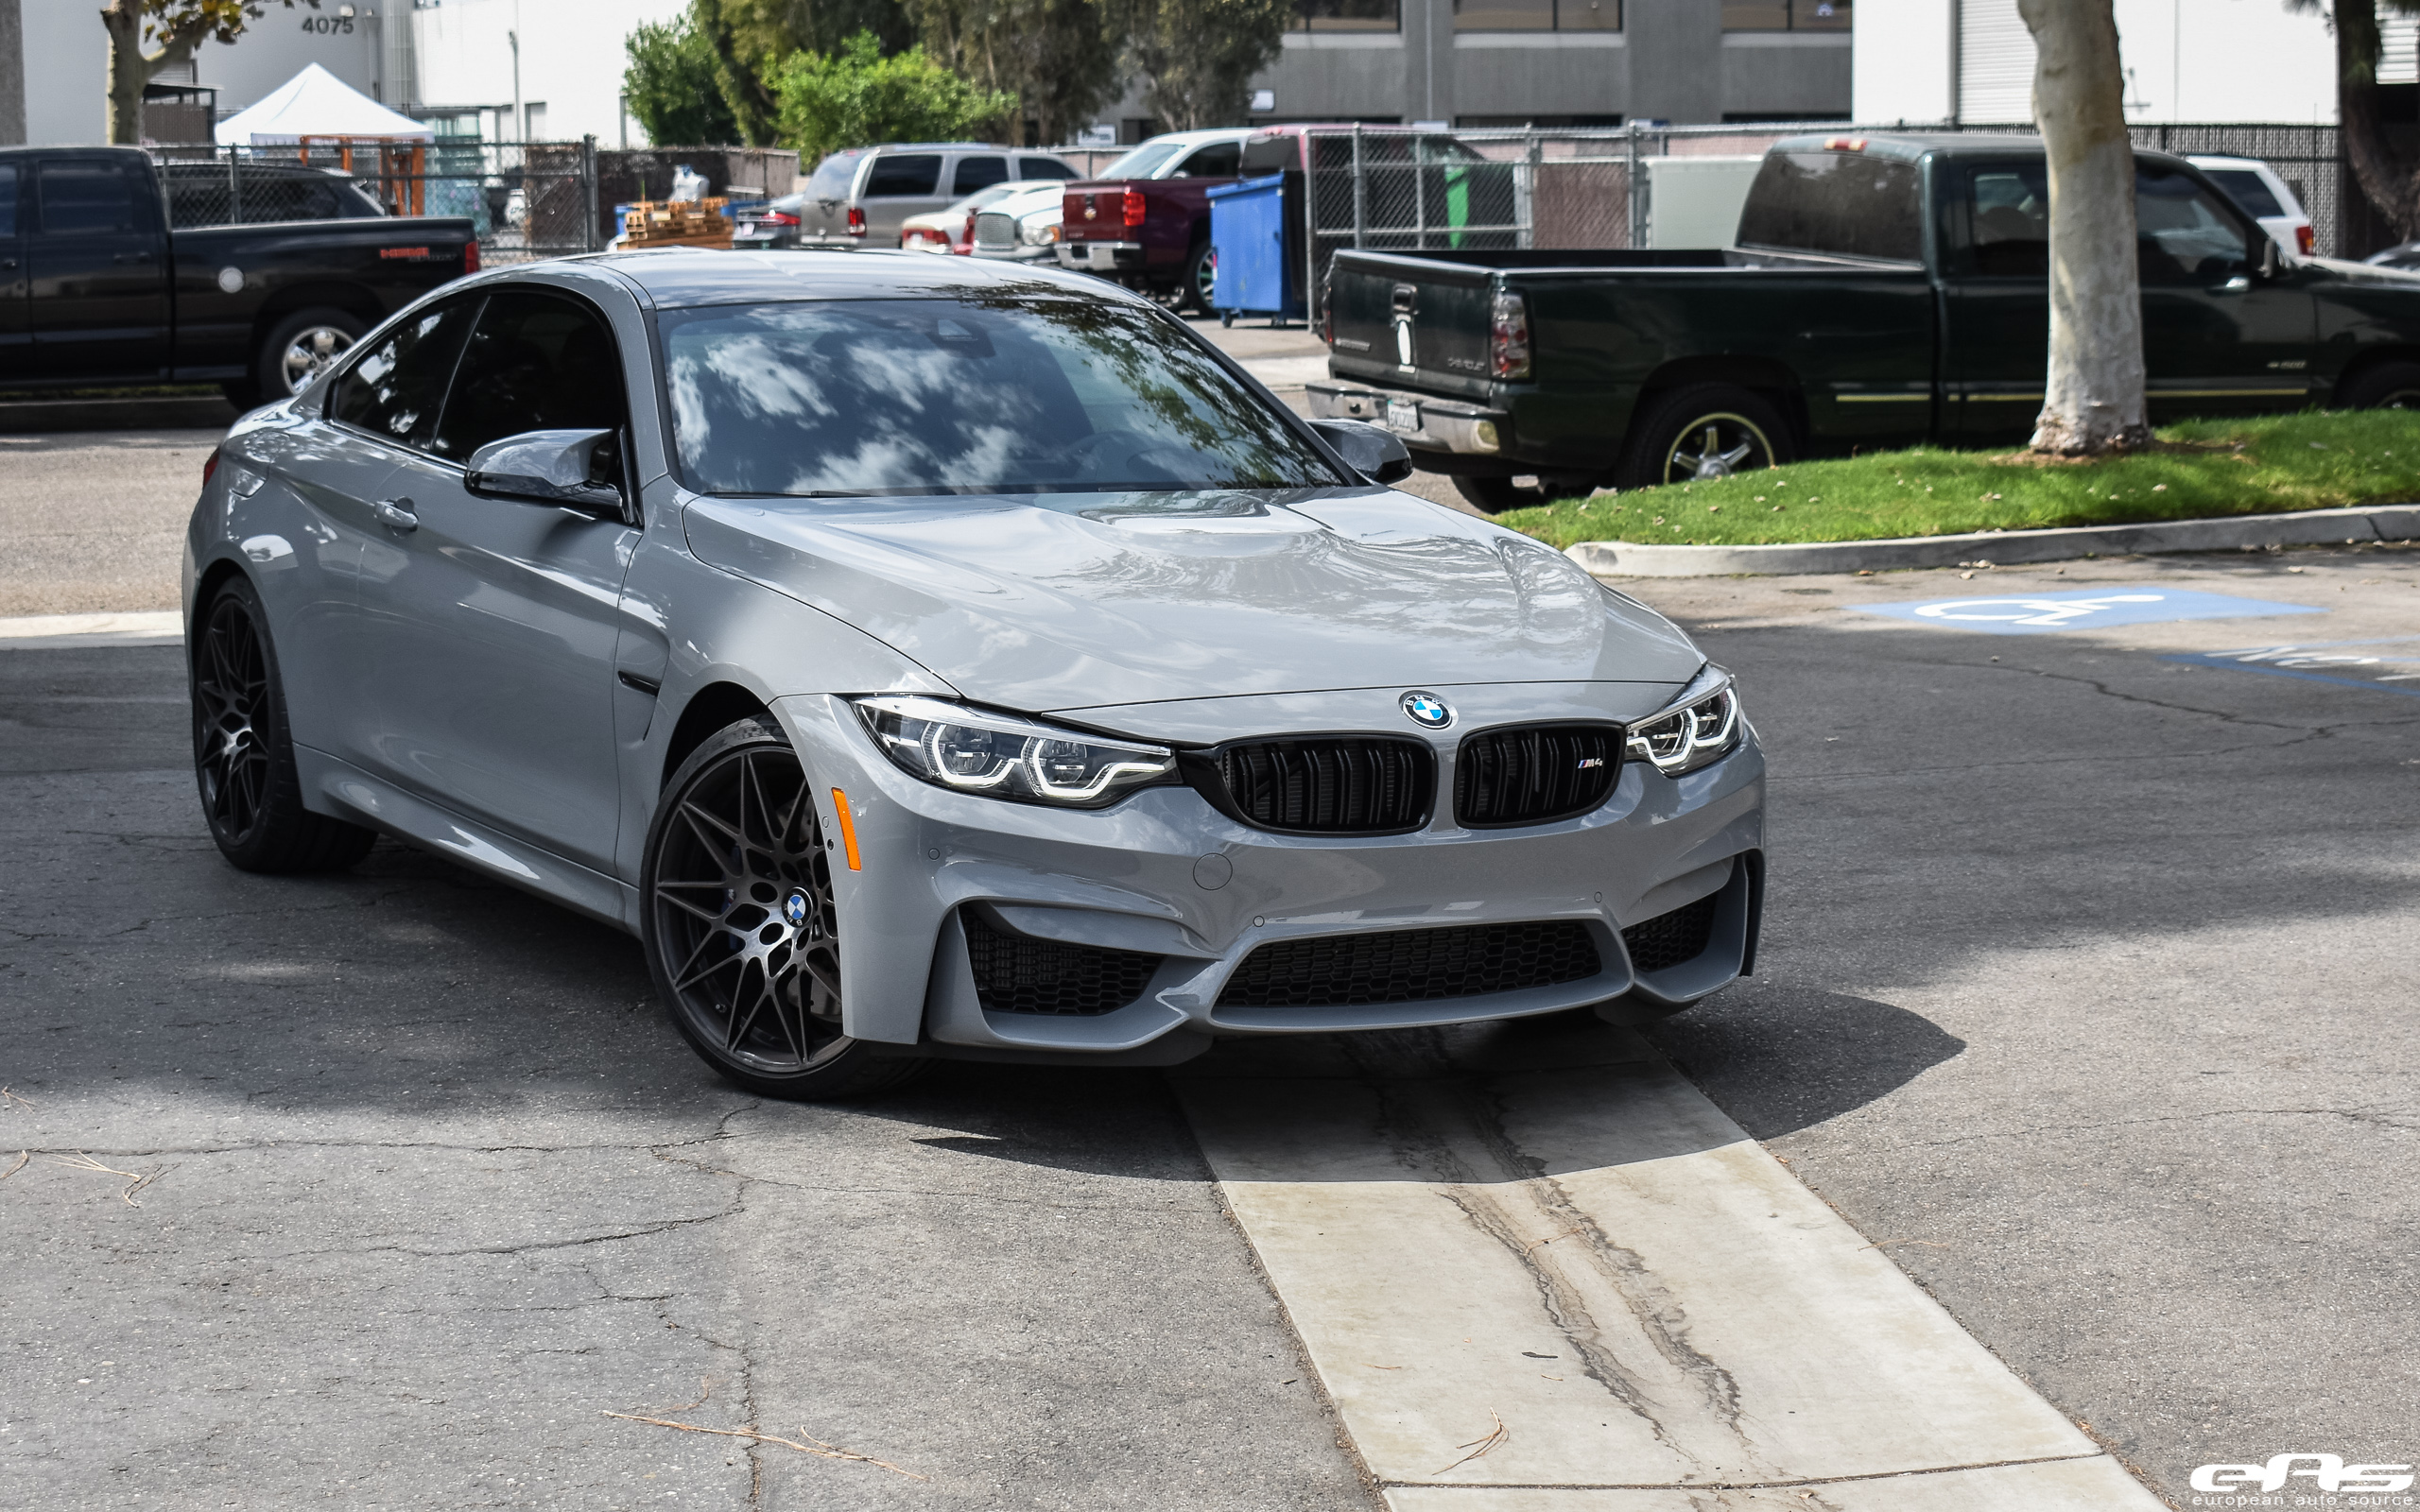 2018 Nardo Grey F82 M4 Zcp Macht Schnell Spacers Bmw Performance